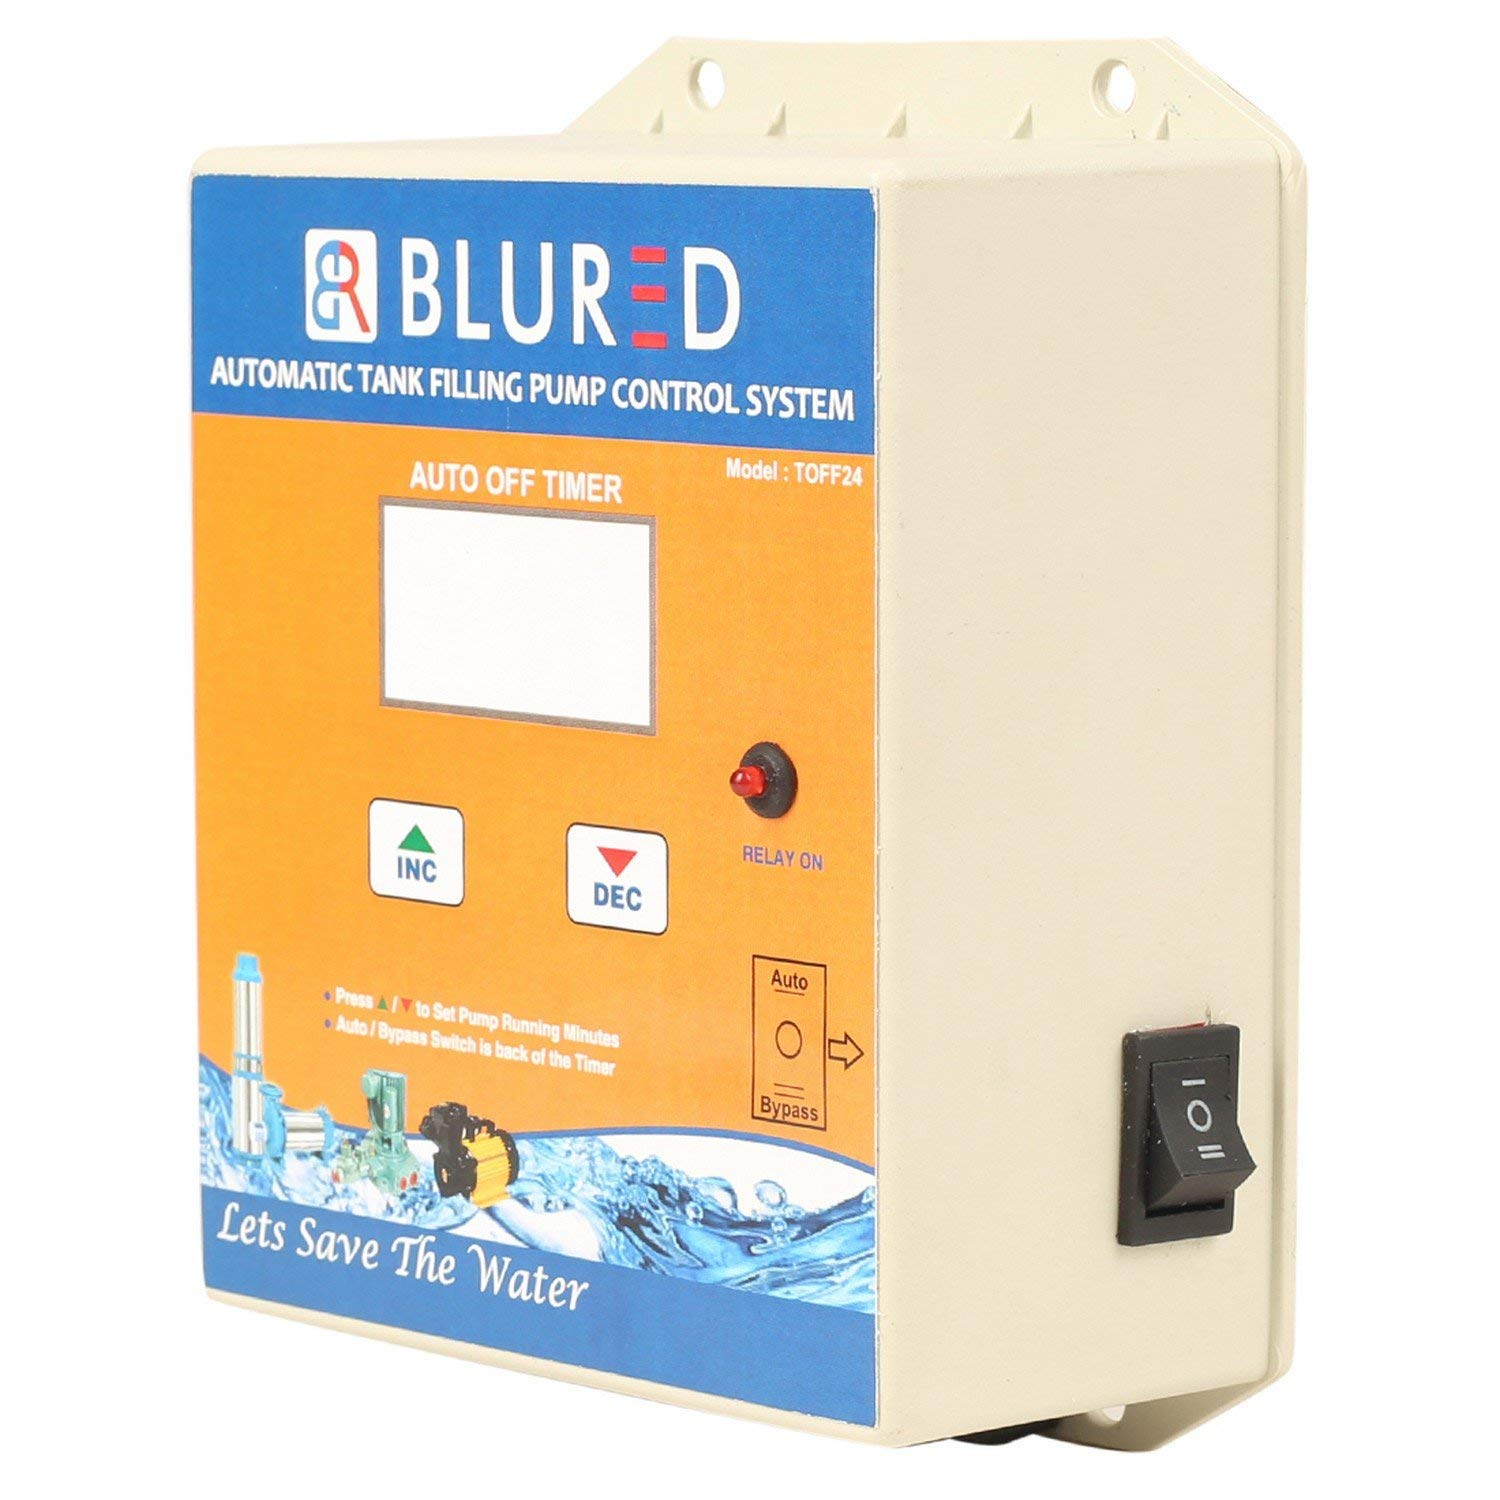 BLURED TOFF24 Automatic Tank Filling Pump Controlling System